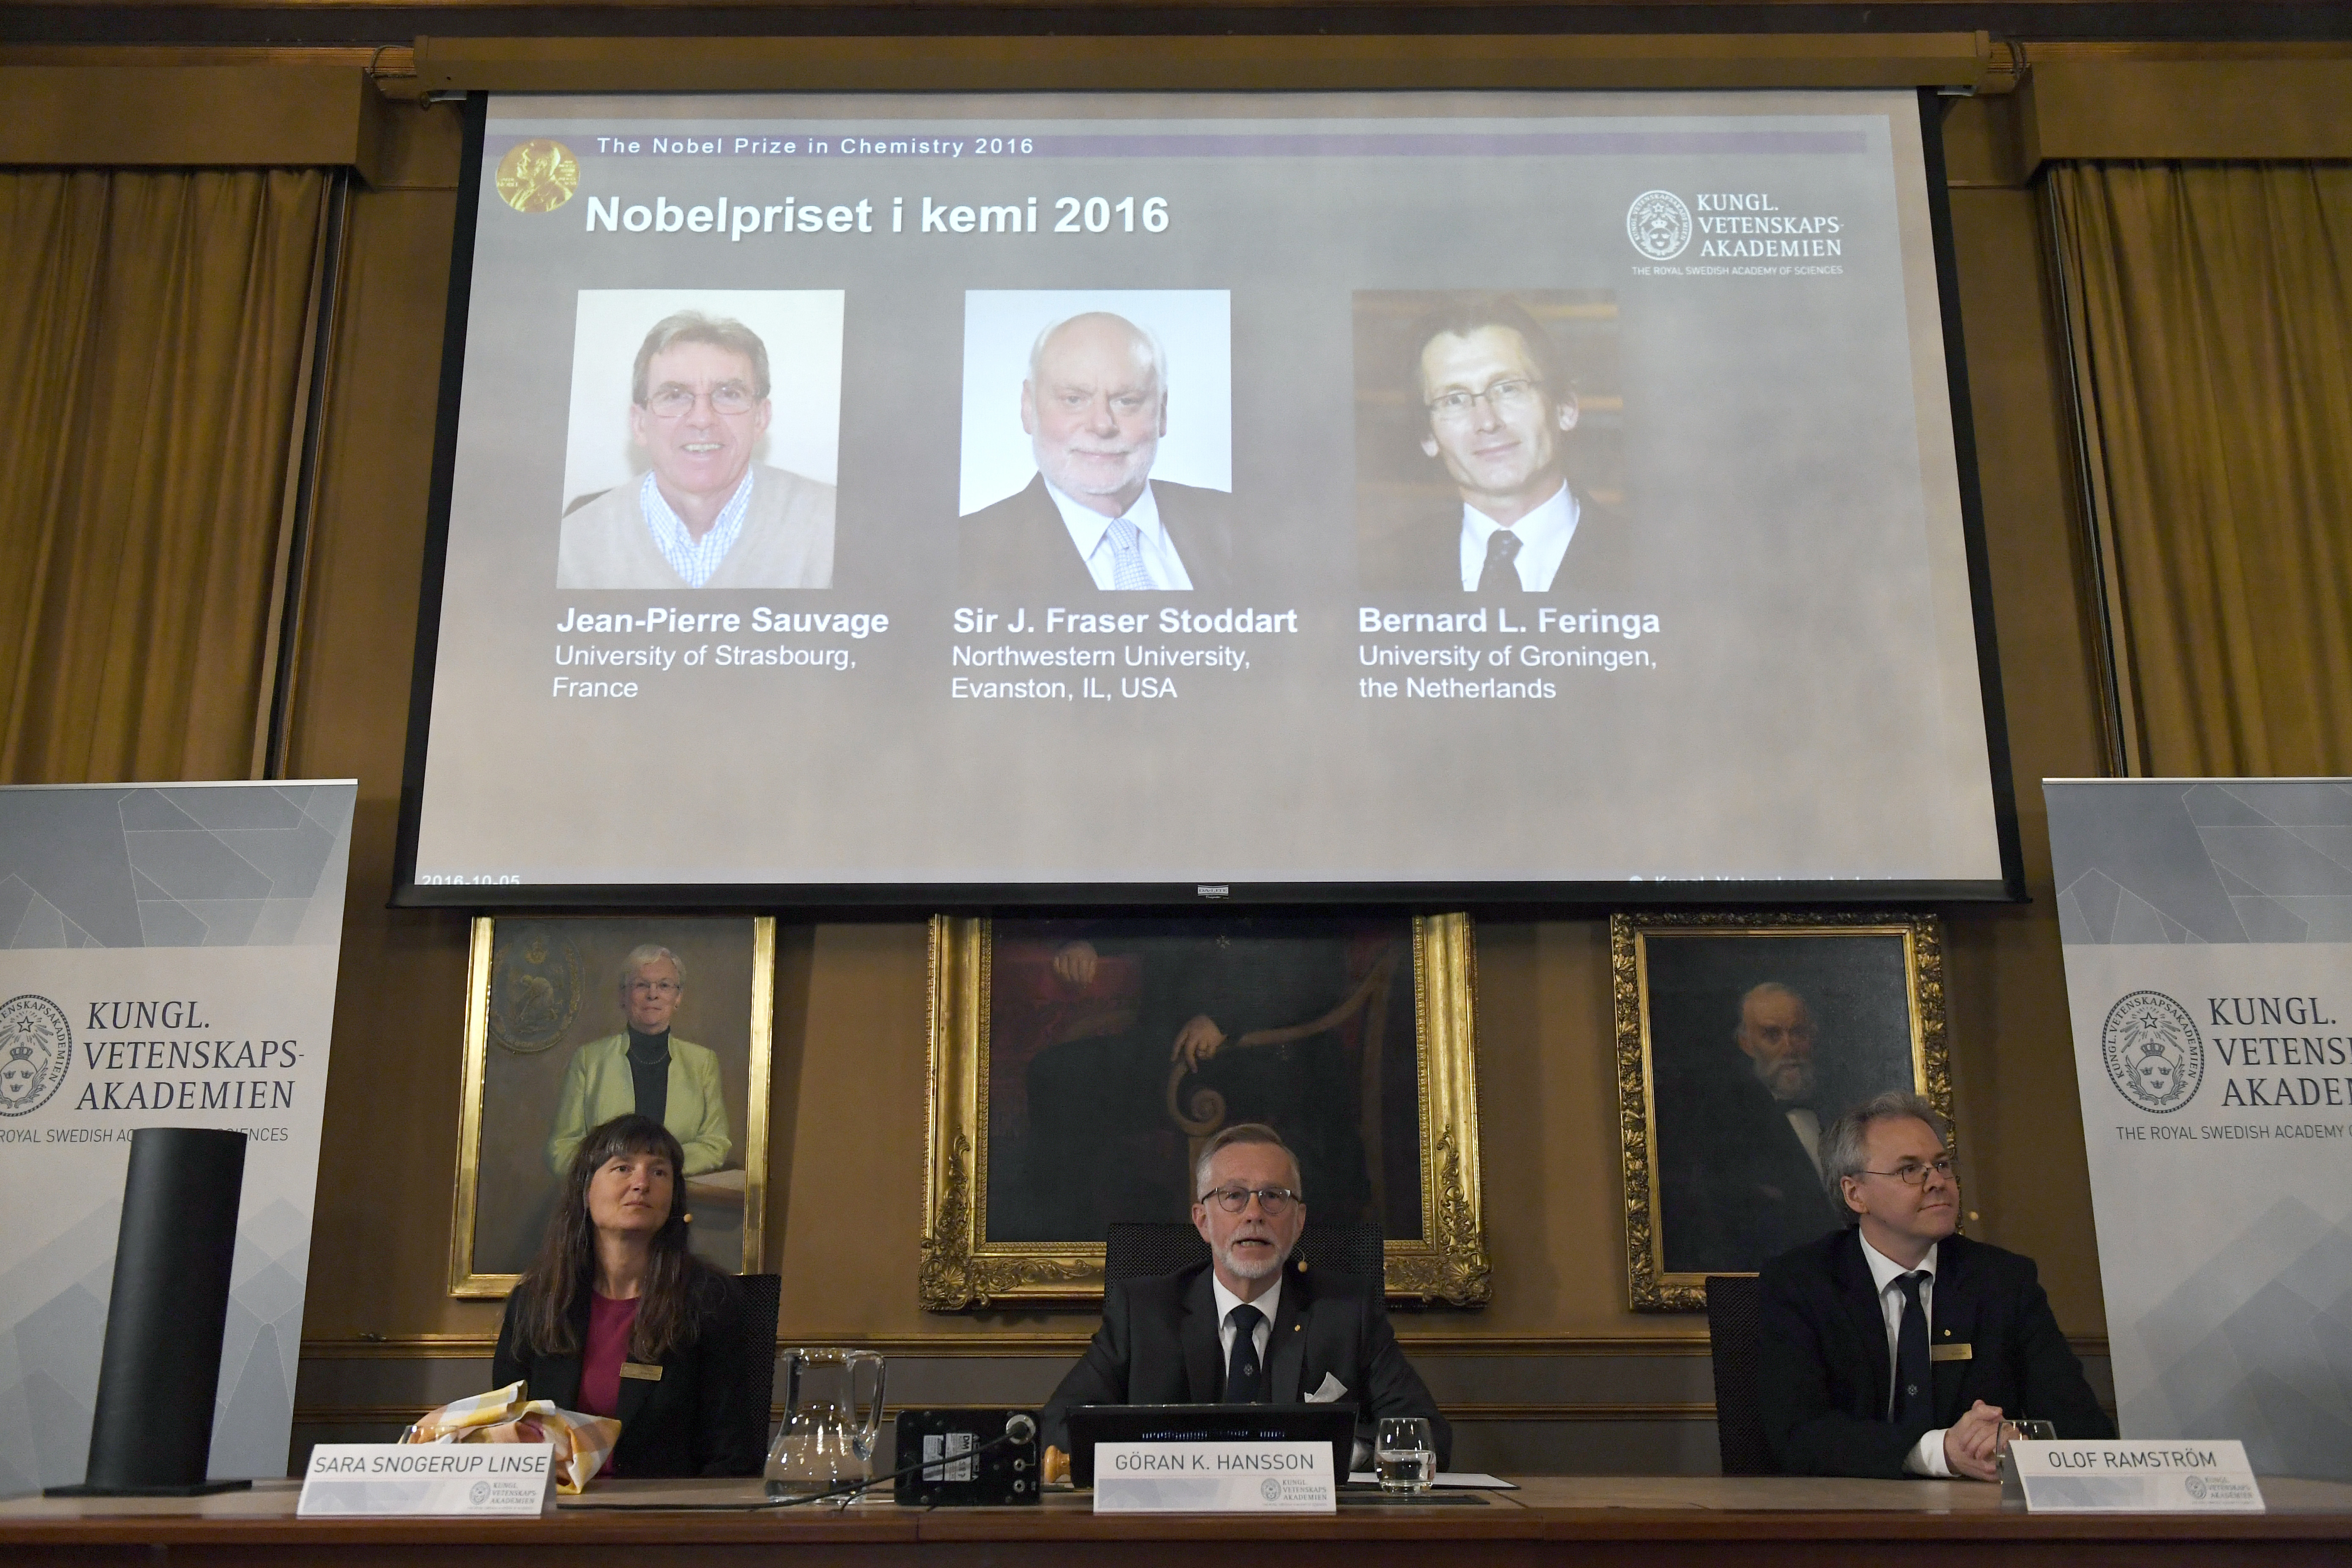 Three scientists, Frenchman Jean-Pierre Sauvage, British-born J. Fraser Stoddart and Dutch scientist Bernard Feringa, were today awarded the Nobel Prize in chemistry